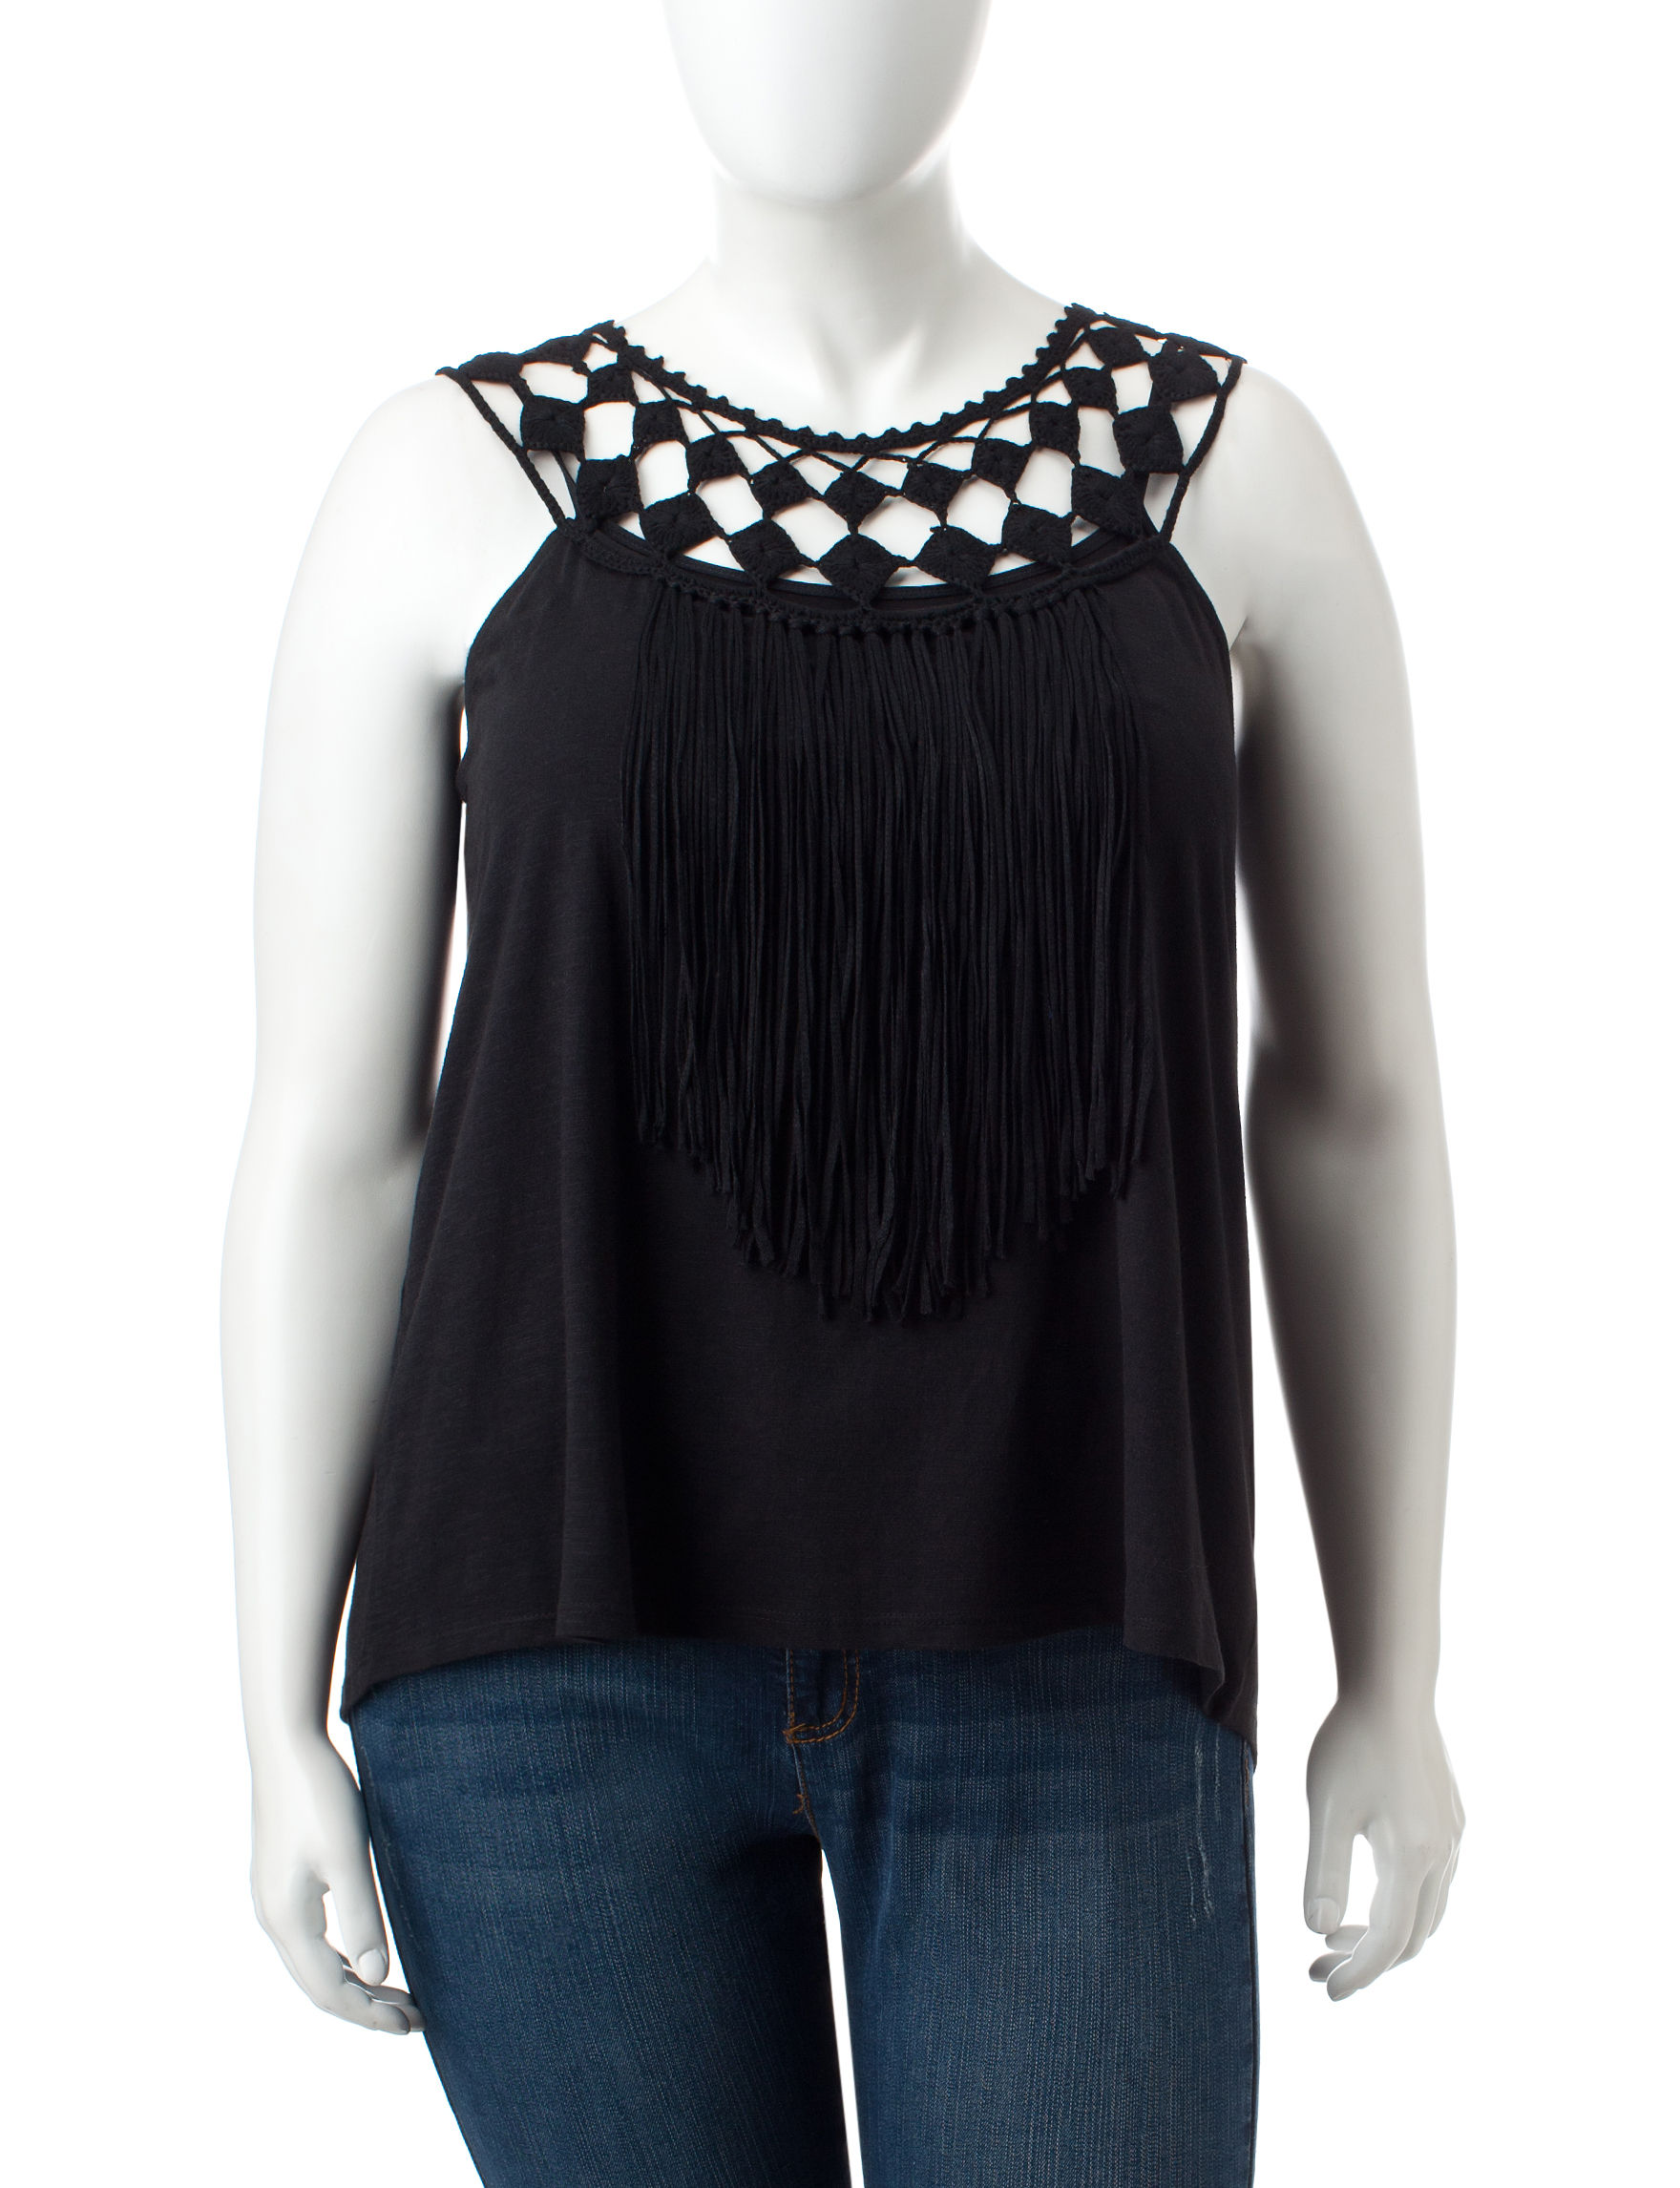 Jessica Simpson Black Tees & Tanks